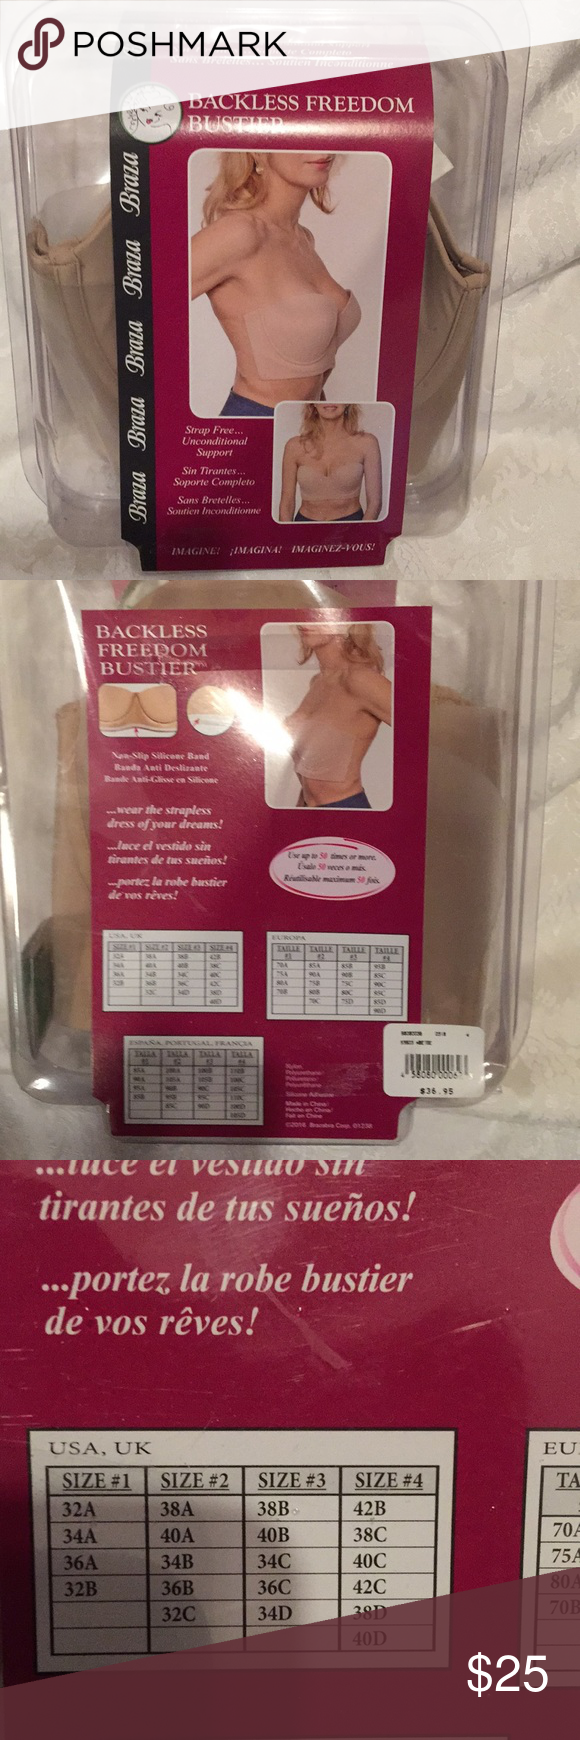 0ddaf91428abf Backless Freedom Bustier Nwt Backless strap free bustier Braza Other